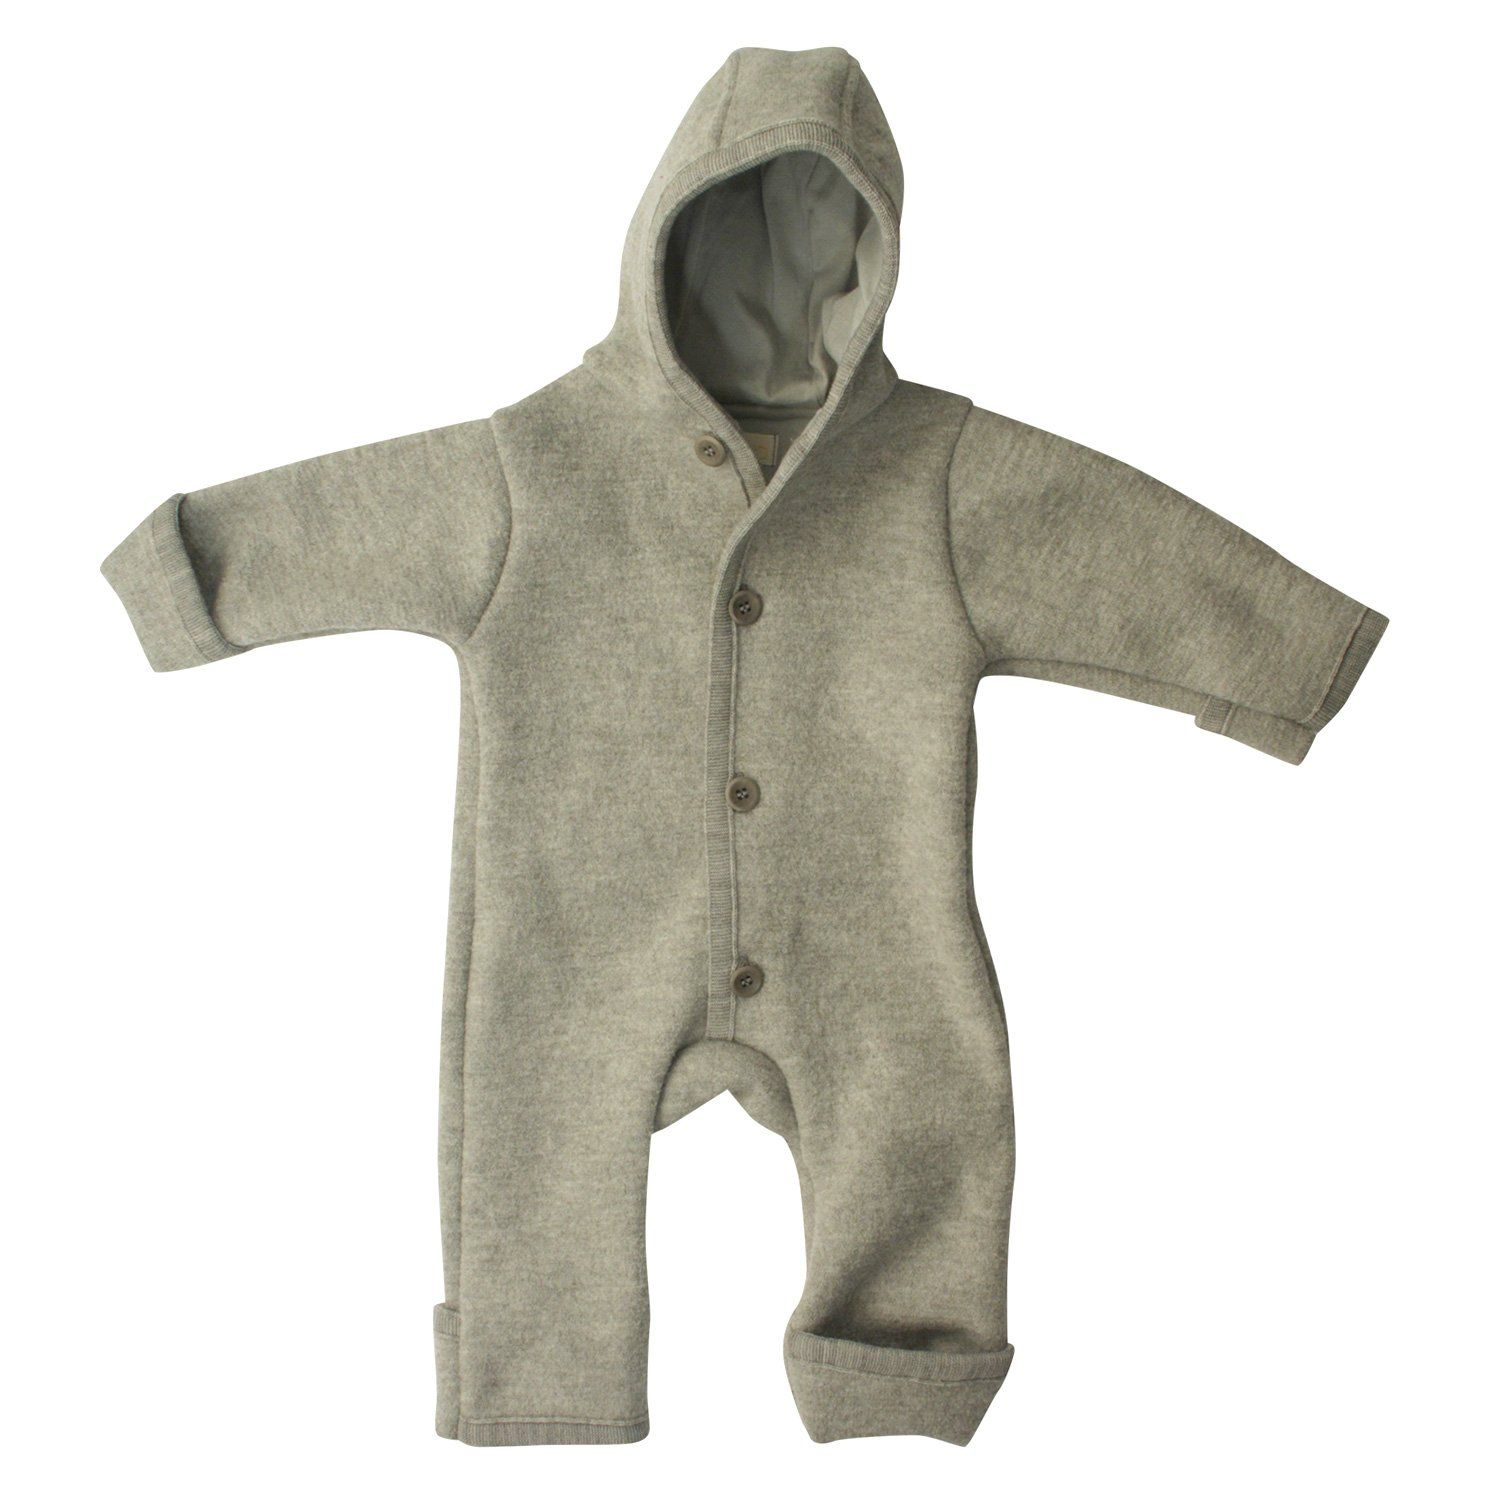 7a5de13cc Amazon.com: Disana 100% Organic Boiled Merino Wool Overall Romper (3-6  Months, Natural): Infant And Toddler Apparel: Clothing